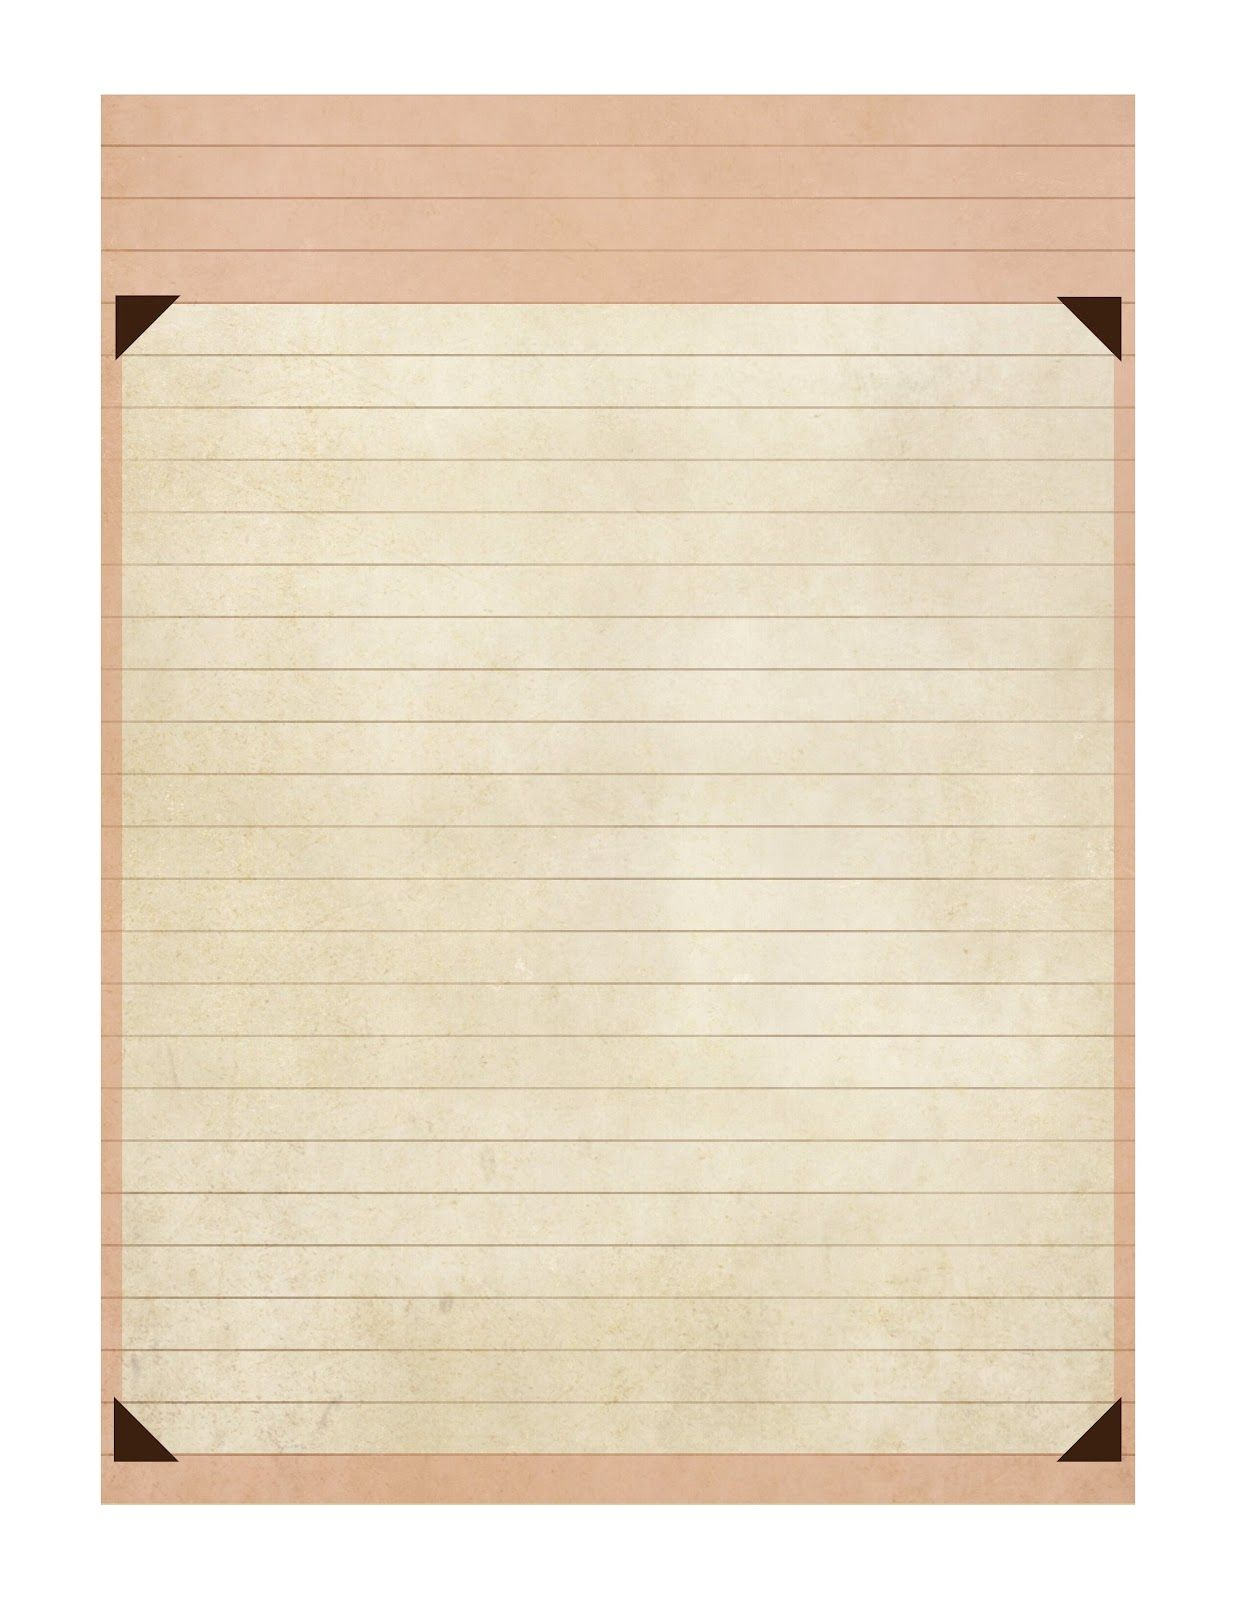 Vintage Garden Journal blank lined page – Blank Lined Page